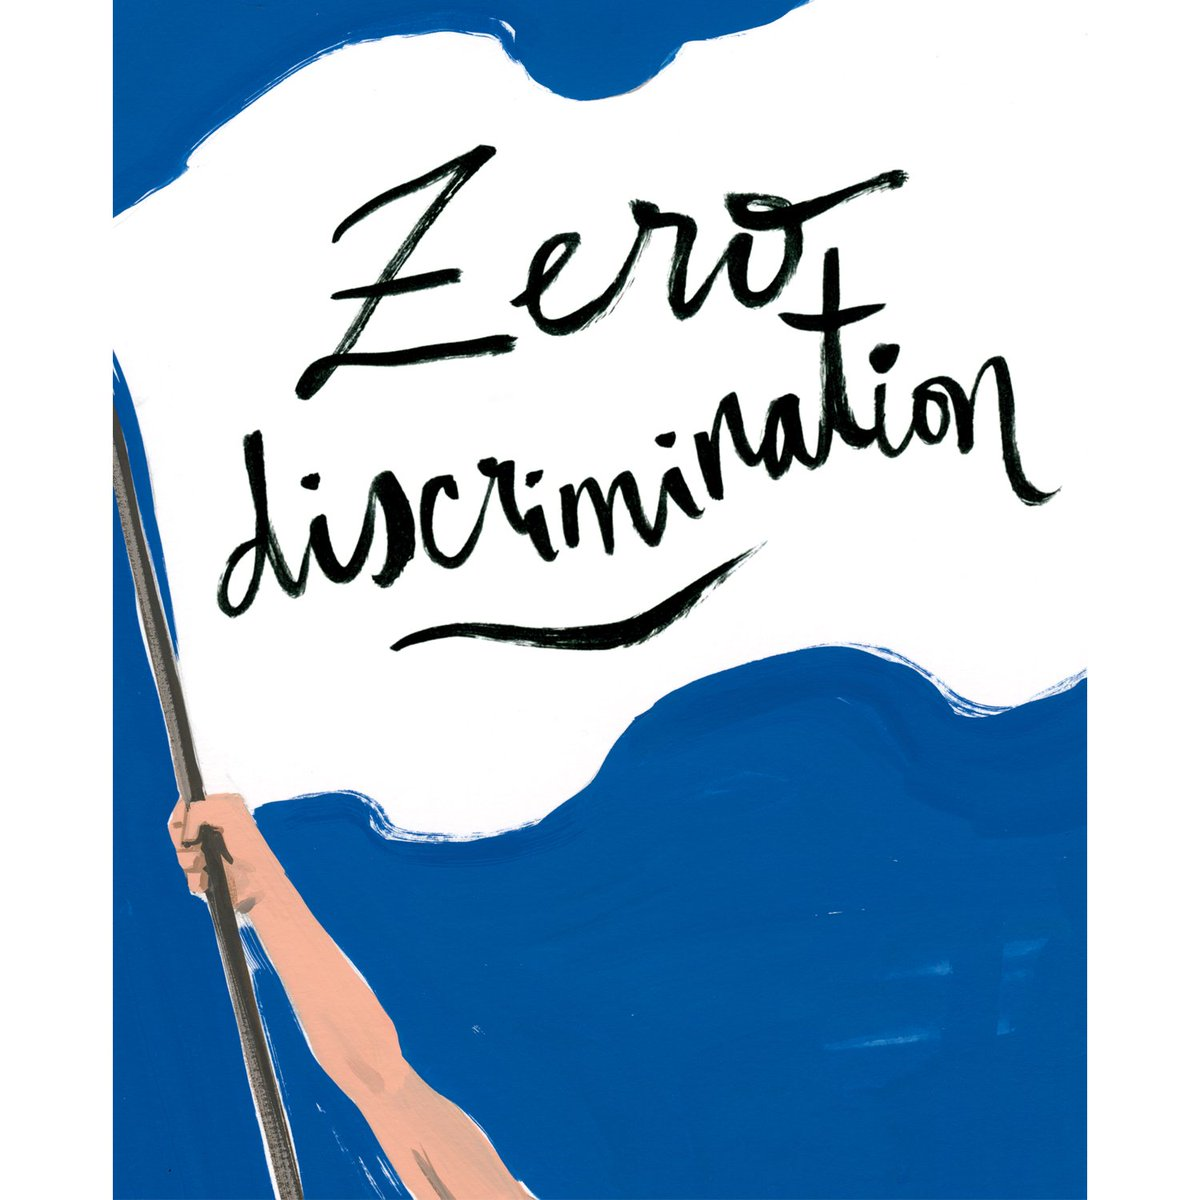 Today is #zerodiscrimination day. Demand justice & equality for all.  Illustration by @JordiLabanda3 https://t.co/vd51sWLNBO